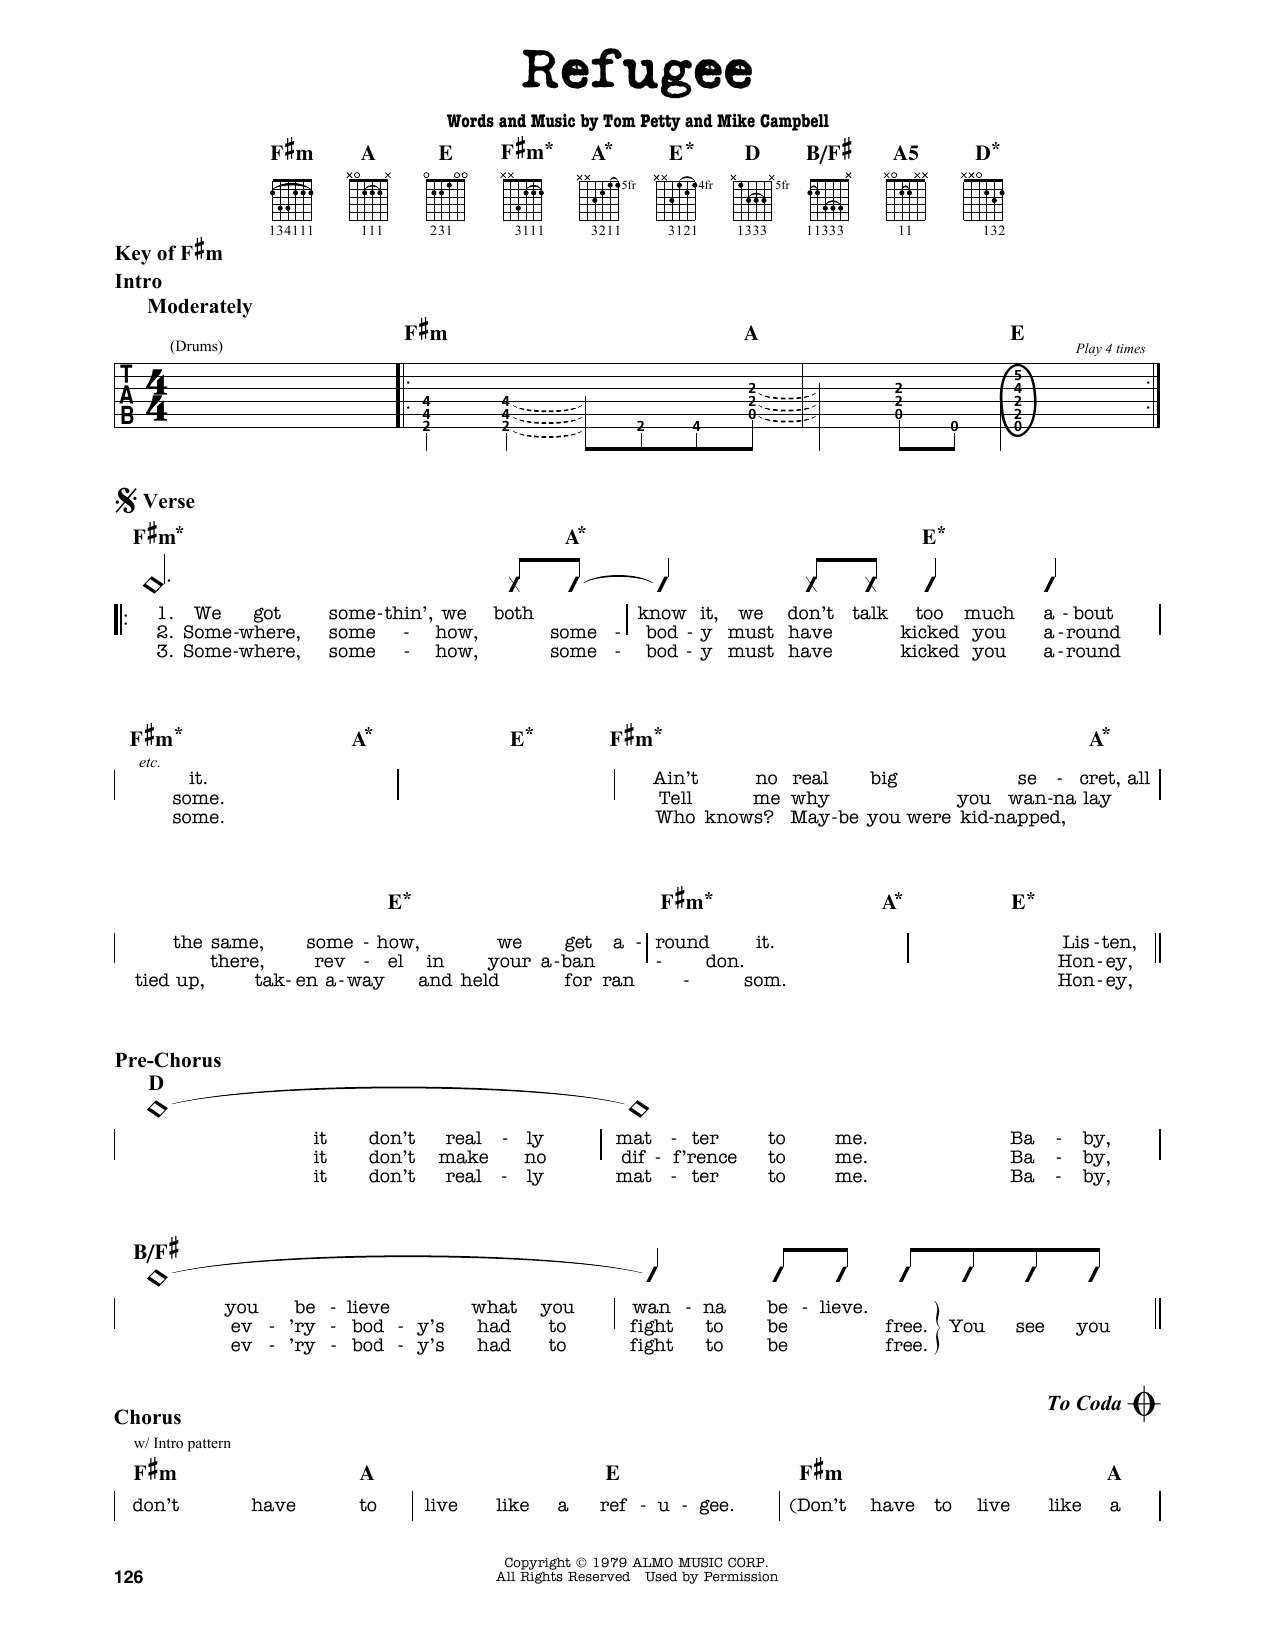 Tom Petty Refugee sheet music notes and chords. Download Printable PDF.